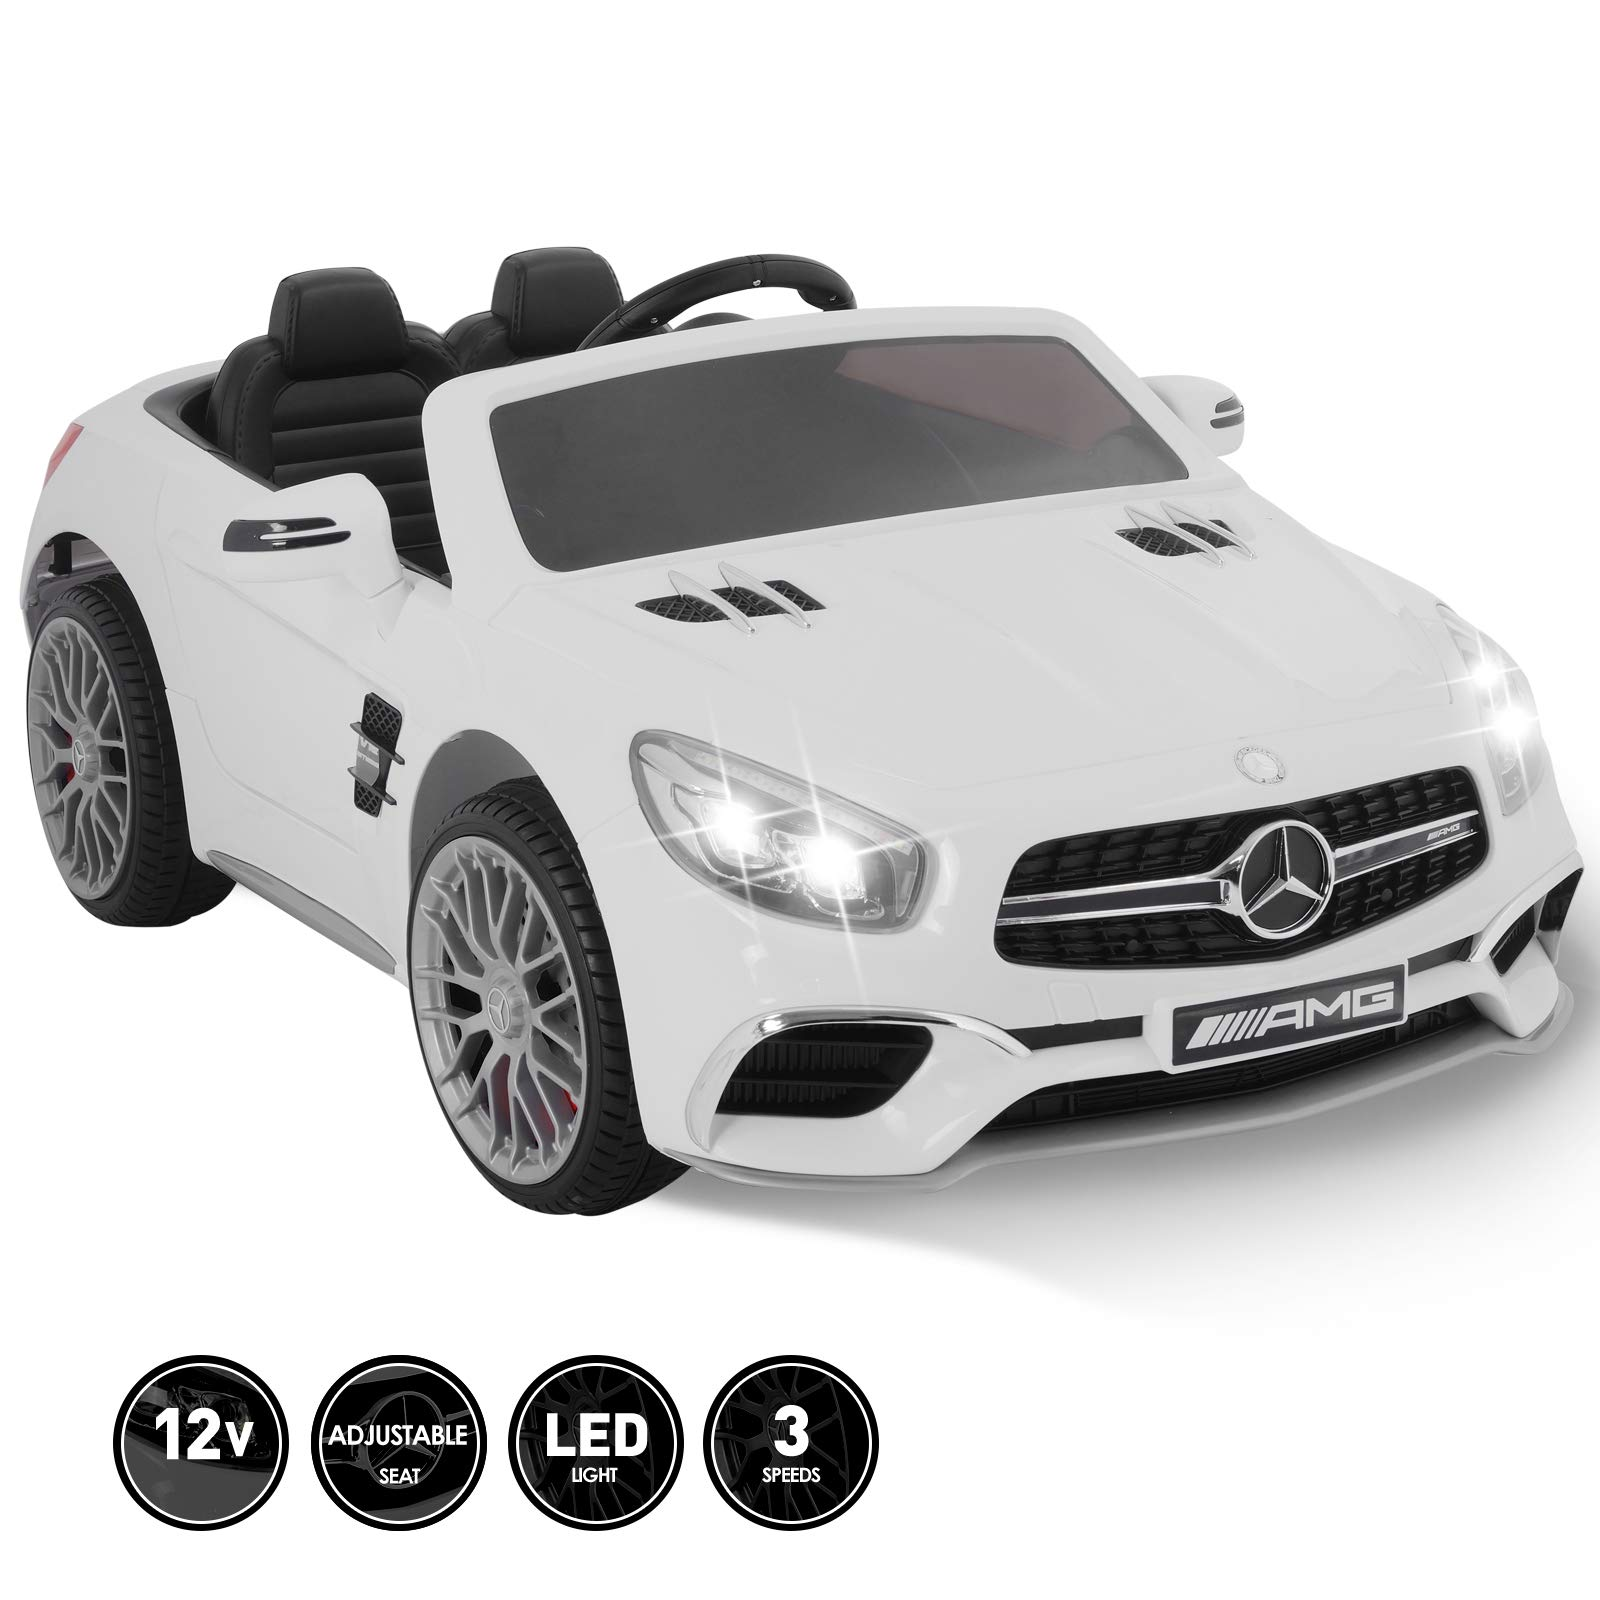 Fitnessclub 12V Kids Ride On Car Toy Licensed Mercedes-Benz AMG Roadster SL65 Electric Car Remote Control Spring Suspension LED Lights Safety Lock Detachable Battery 3 Speeds USB White